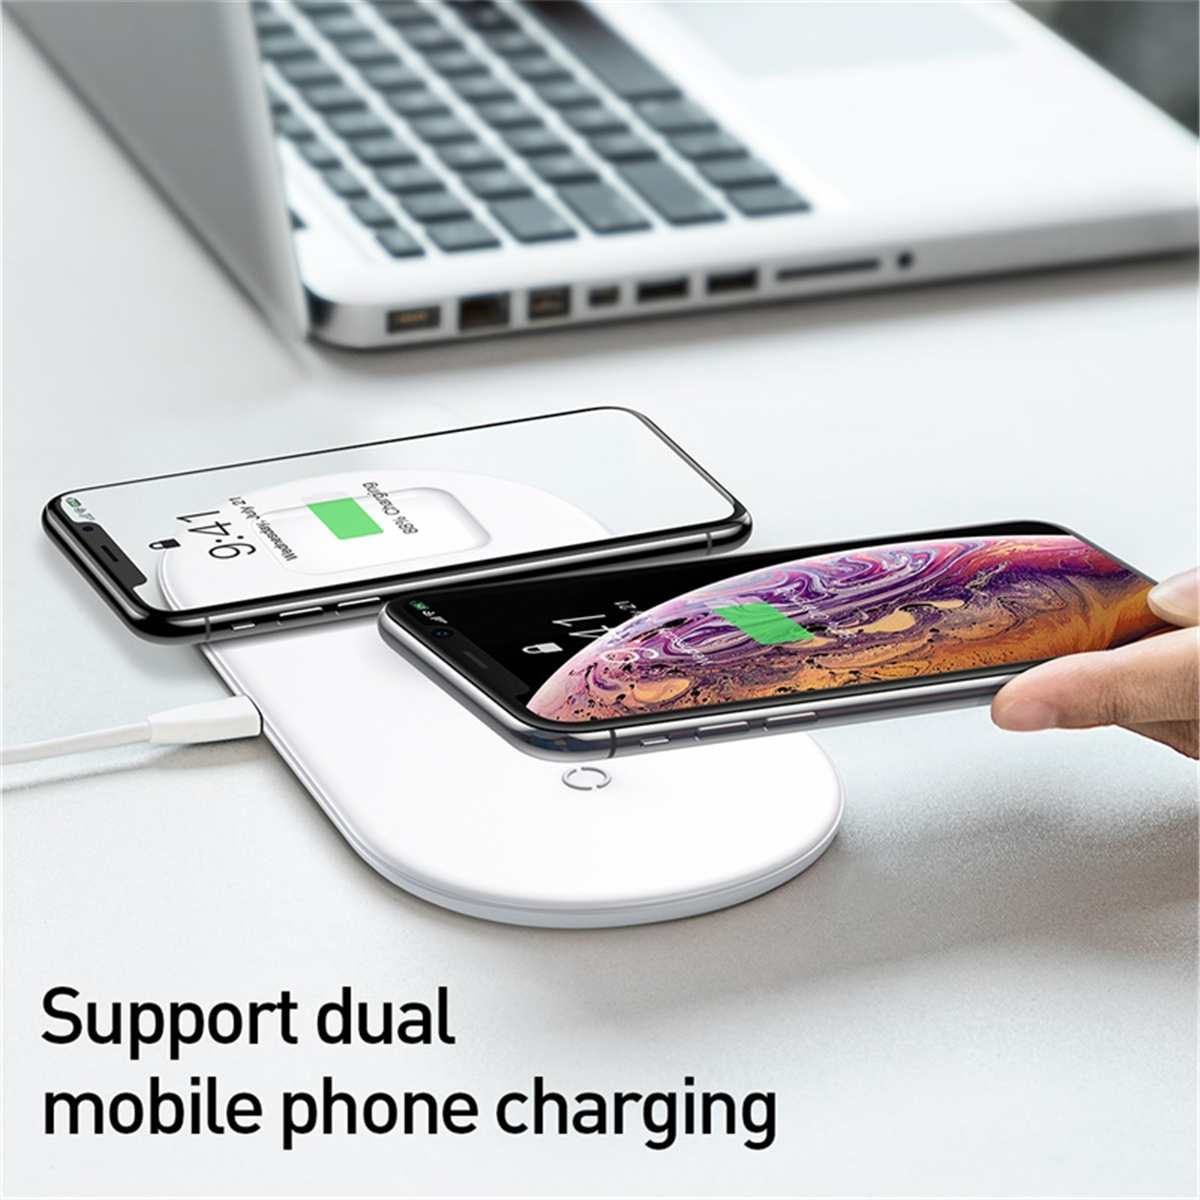 Fast Wireless Charging Dock Station Qi Wireless Charger Pad for iPhone XS Max 8 for AirPod Charger for Apple Watch Series 2 3 4